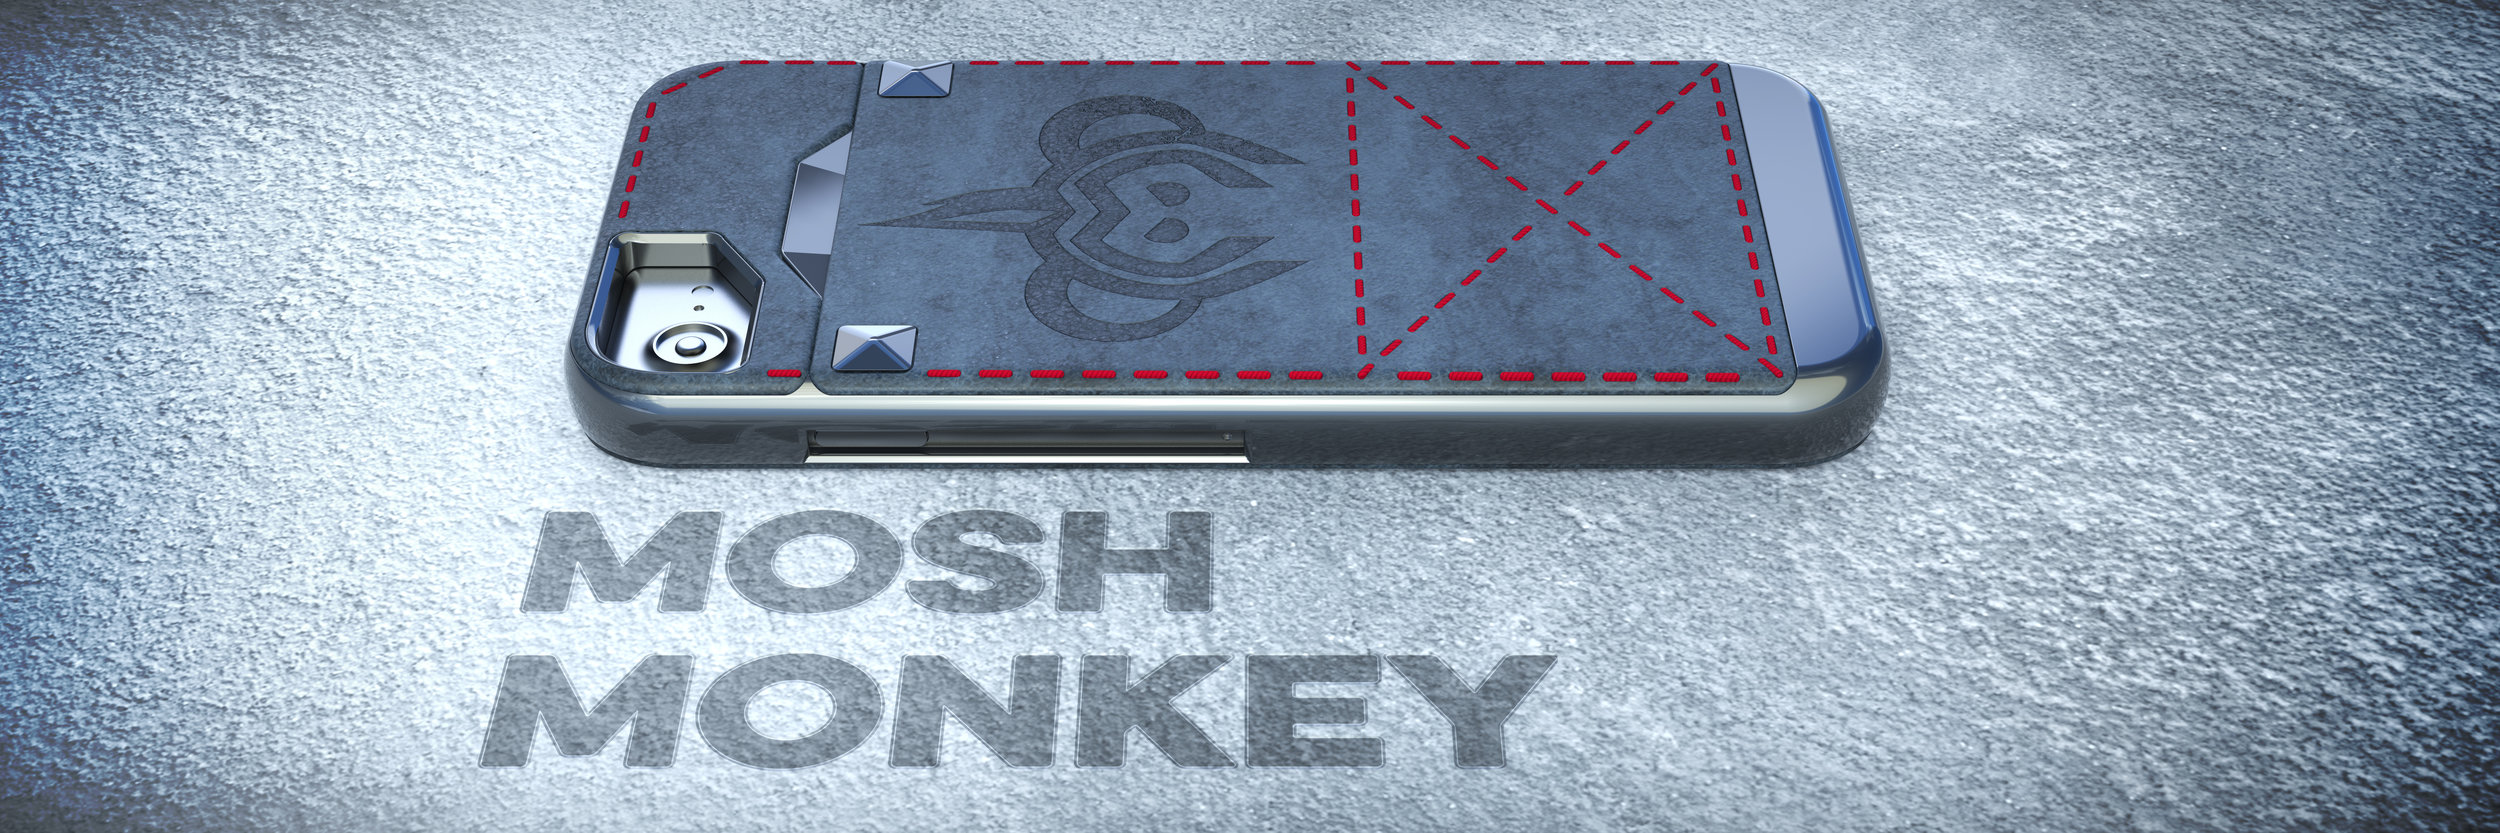 Consumer Electronics Design, Packaging Design, Branding    Mosh Monkey    VIEW PROJECT